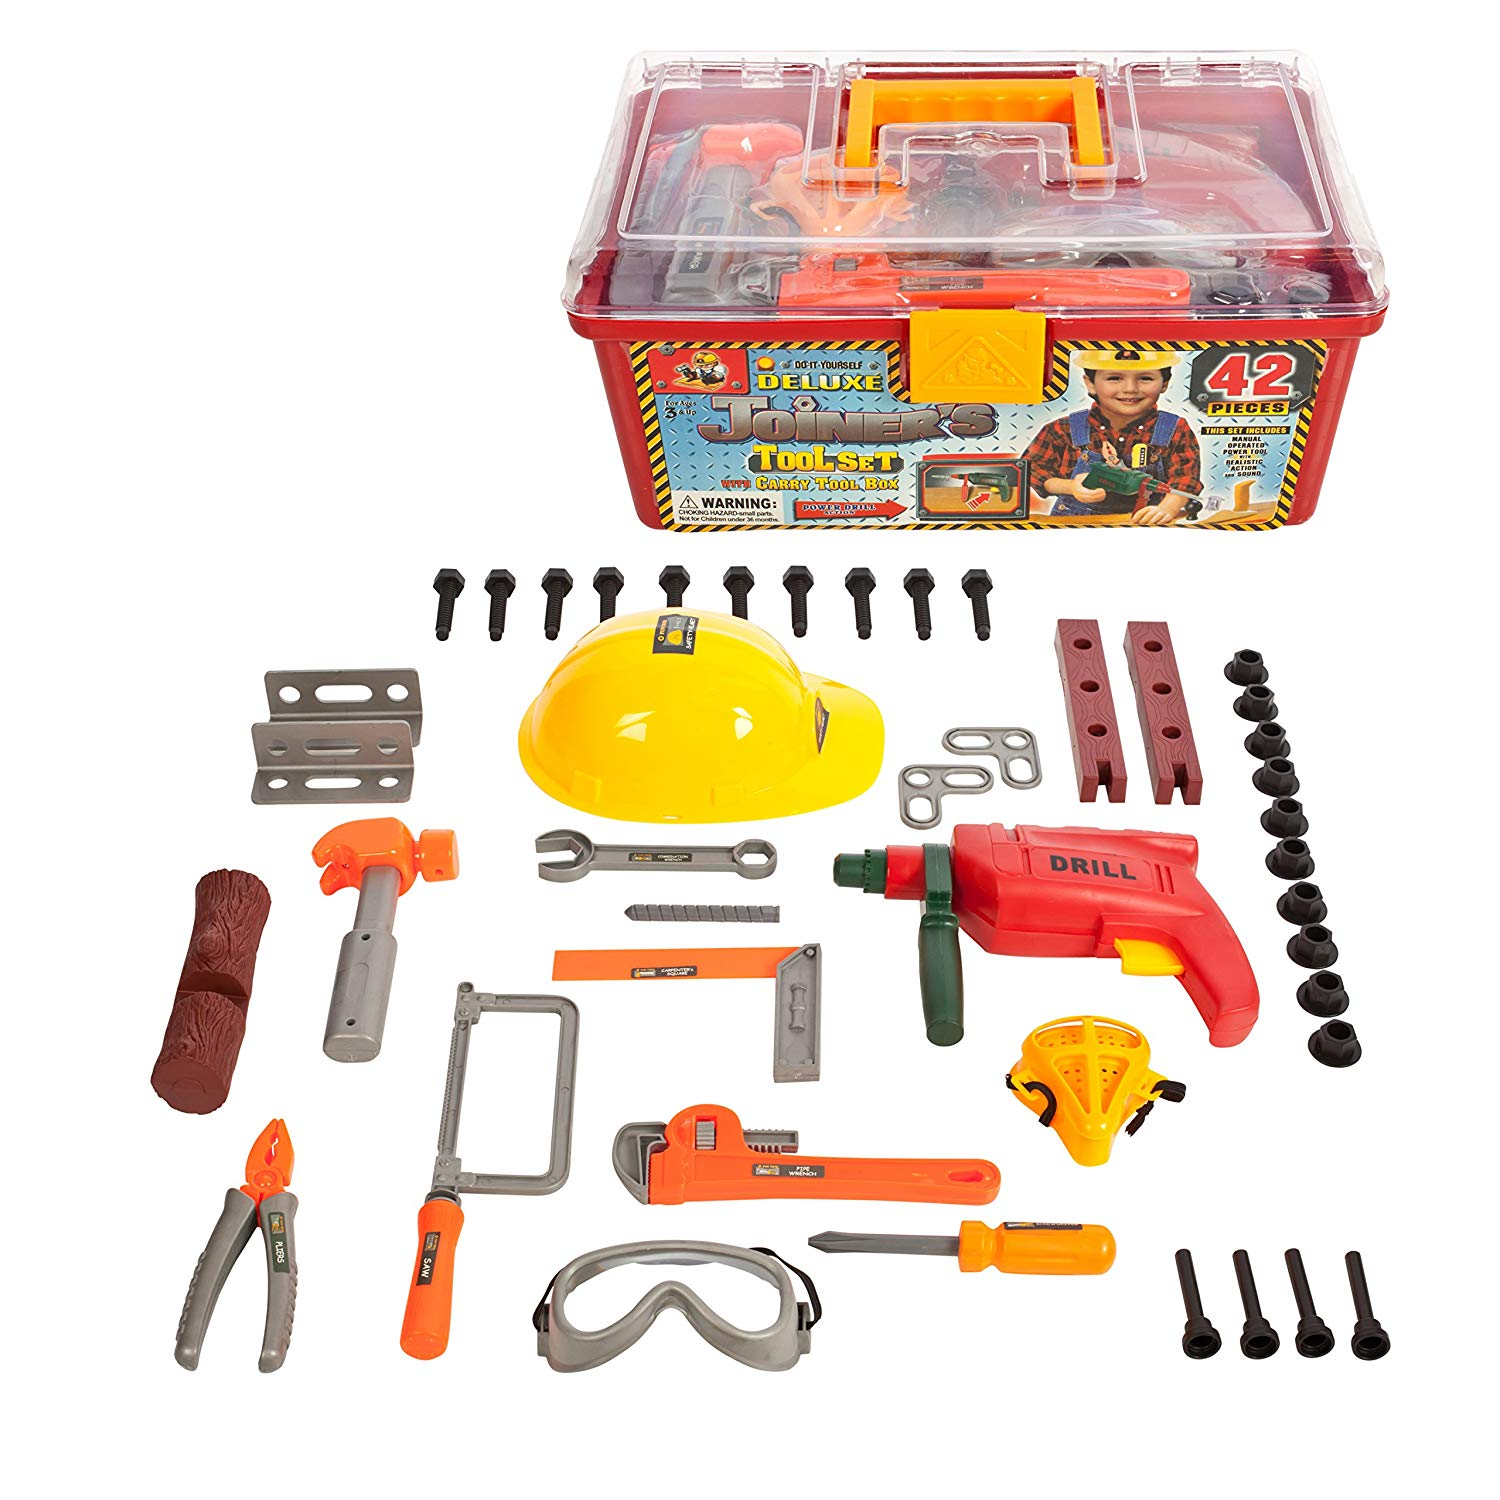 42 Piece Tool set in a Tool box with working drill & Helmet